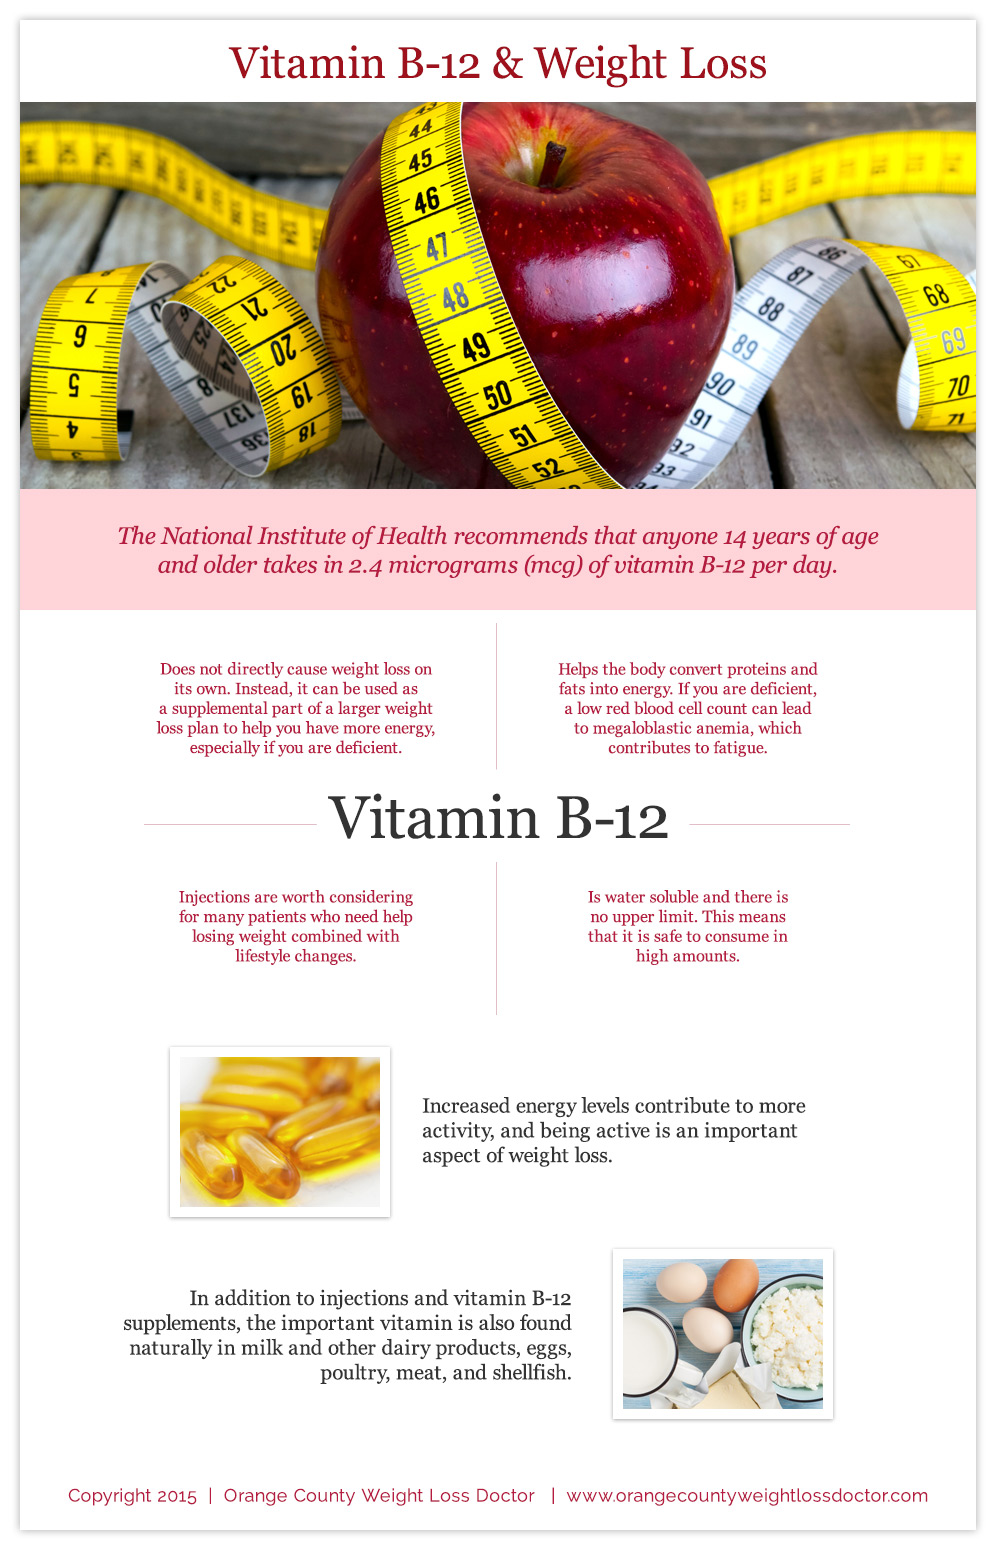 Vitamin B 12 and Weight Loss by OC Weight Loss - Infographics